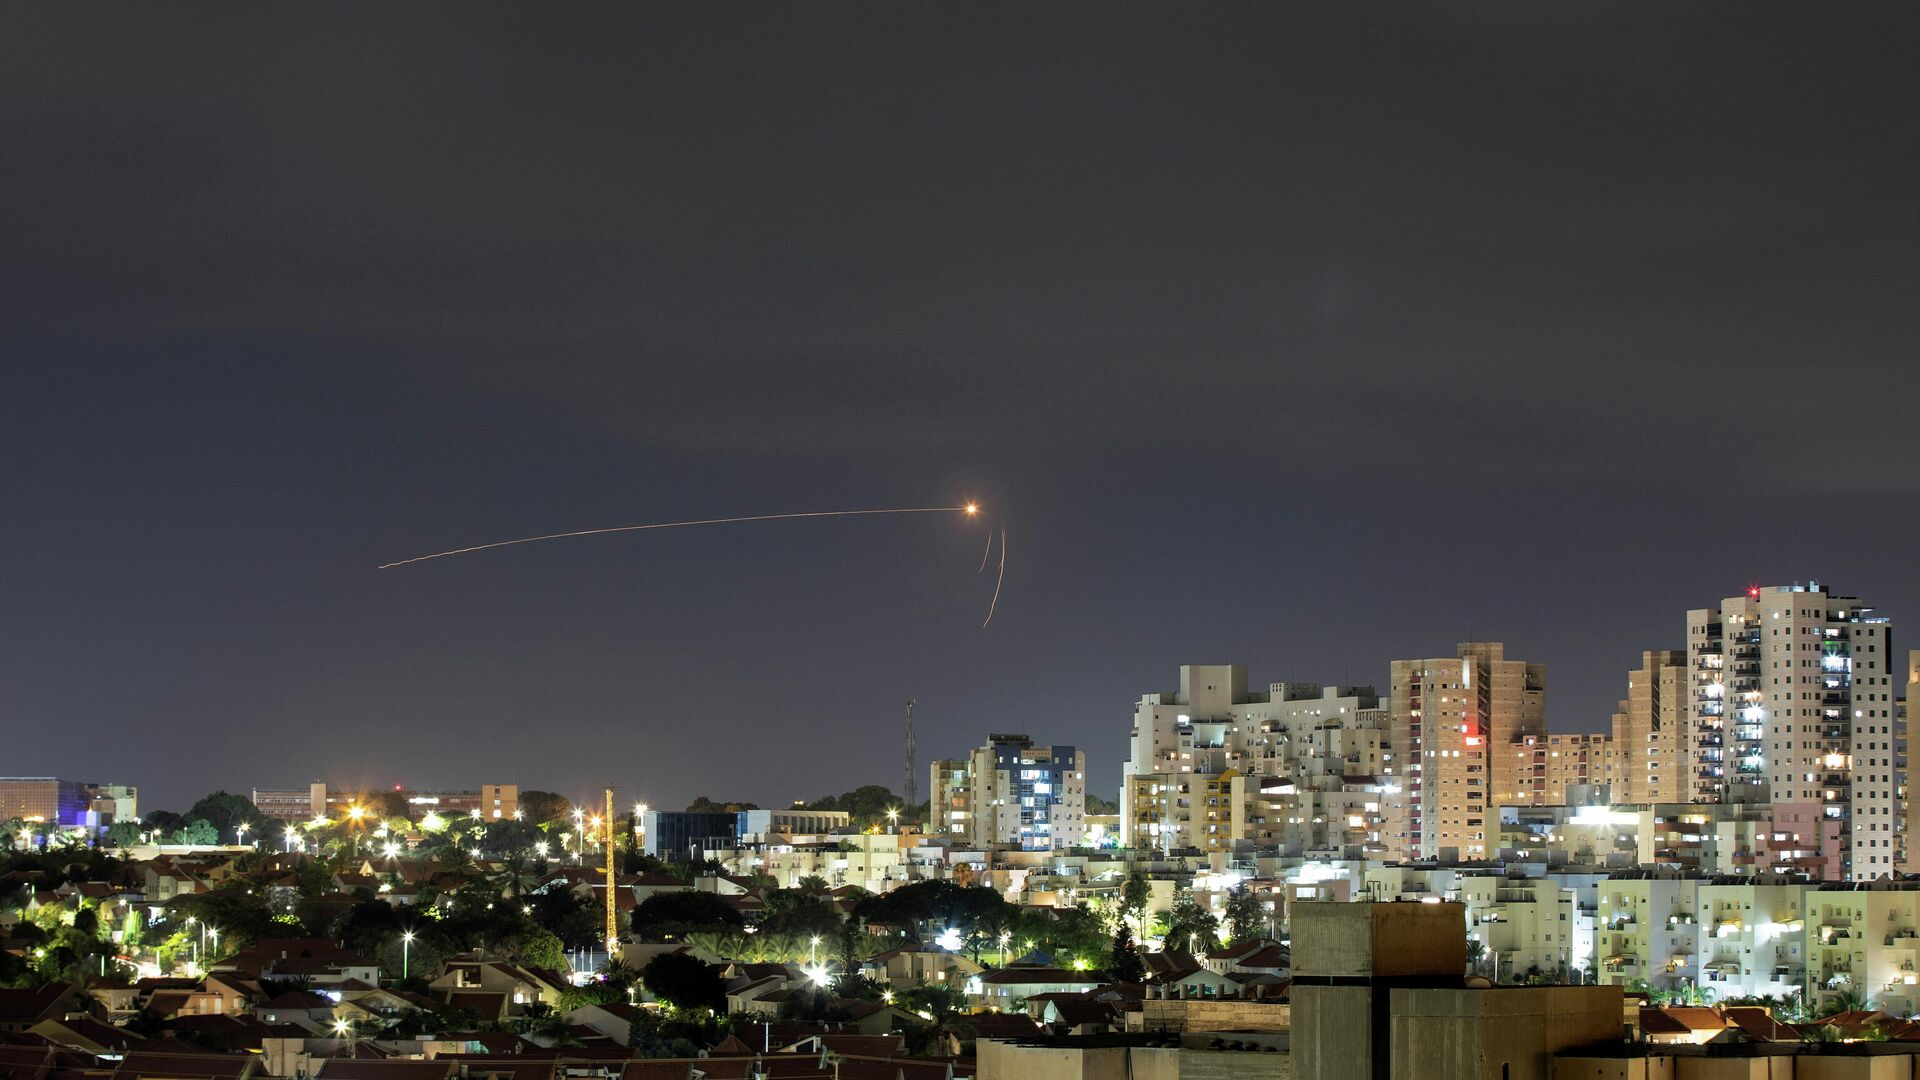 Streaks of light are seen as Israel's Iron Dome anti-missile system intercepts a rocket launched from the Gaza Strip towards Israel, as seen from Ashkelon, Israel September 11, 2021 - Sputnik International, 1920, 11.09.2021